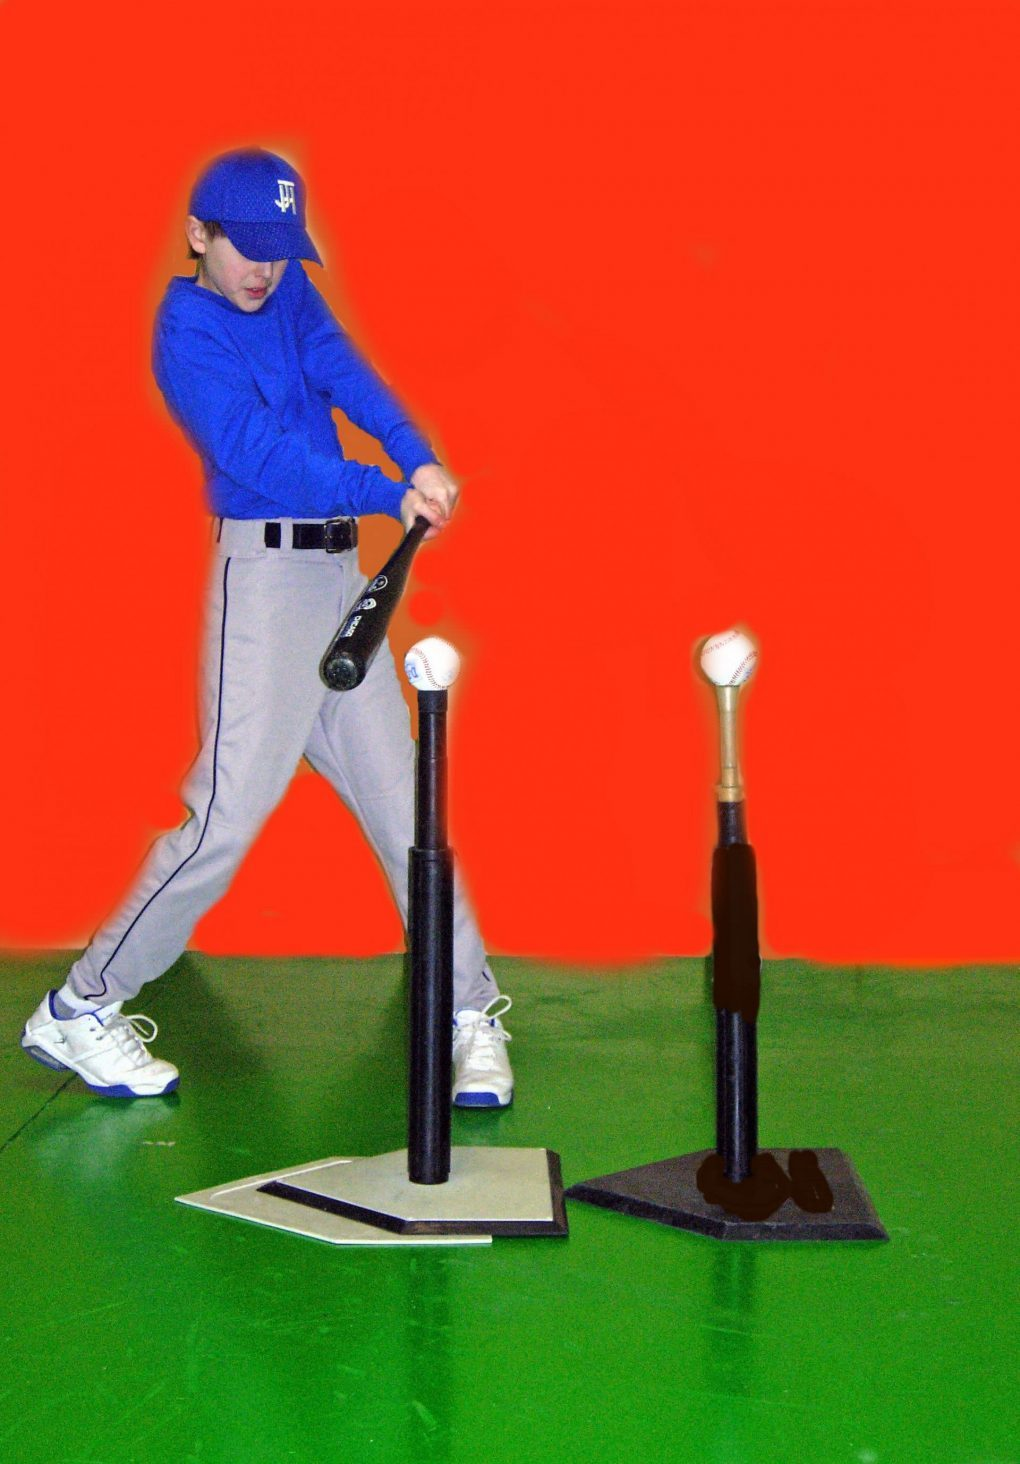 Advanced Hip Turn Hitting Drill – Final Video of Series